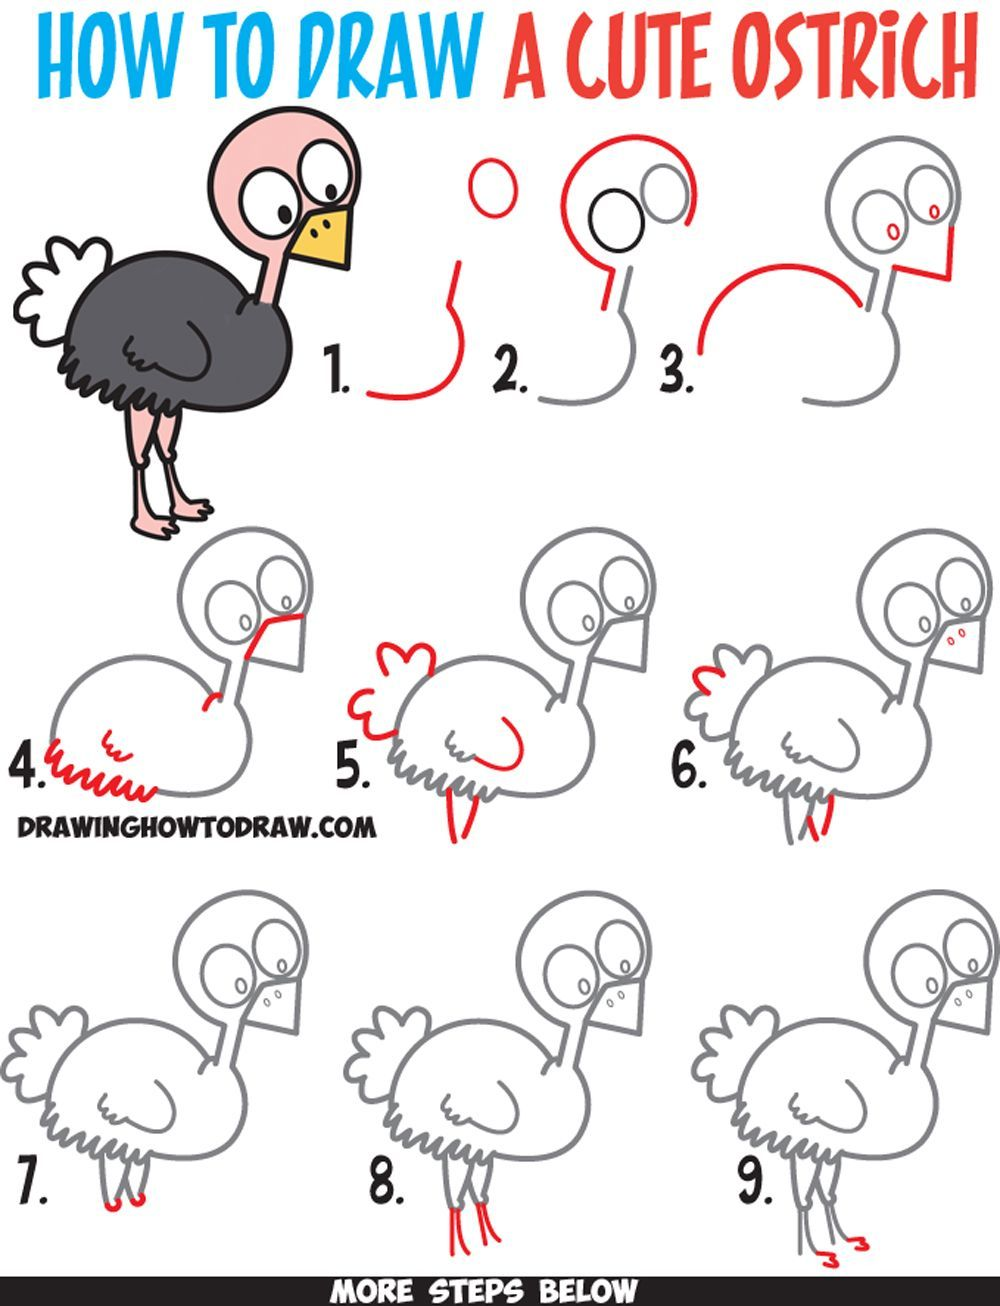 How to draw a cute cartoon ostrich easy step by step